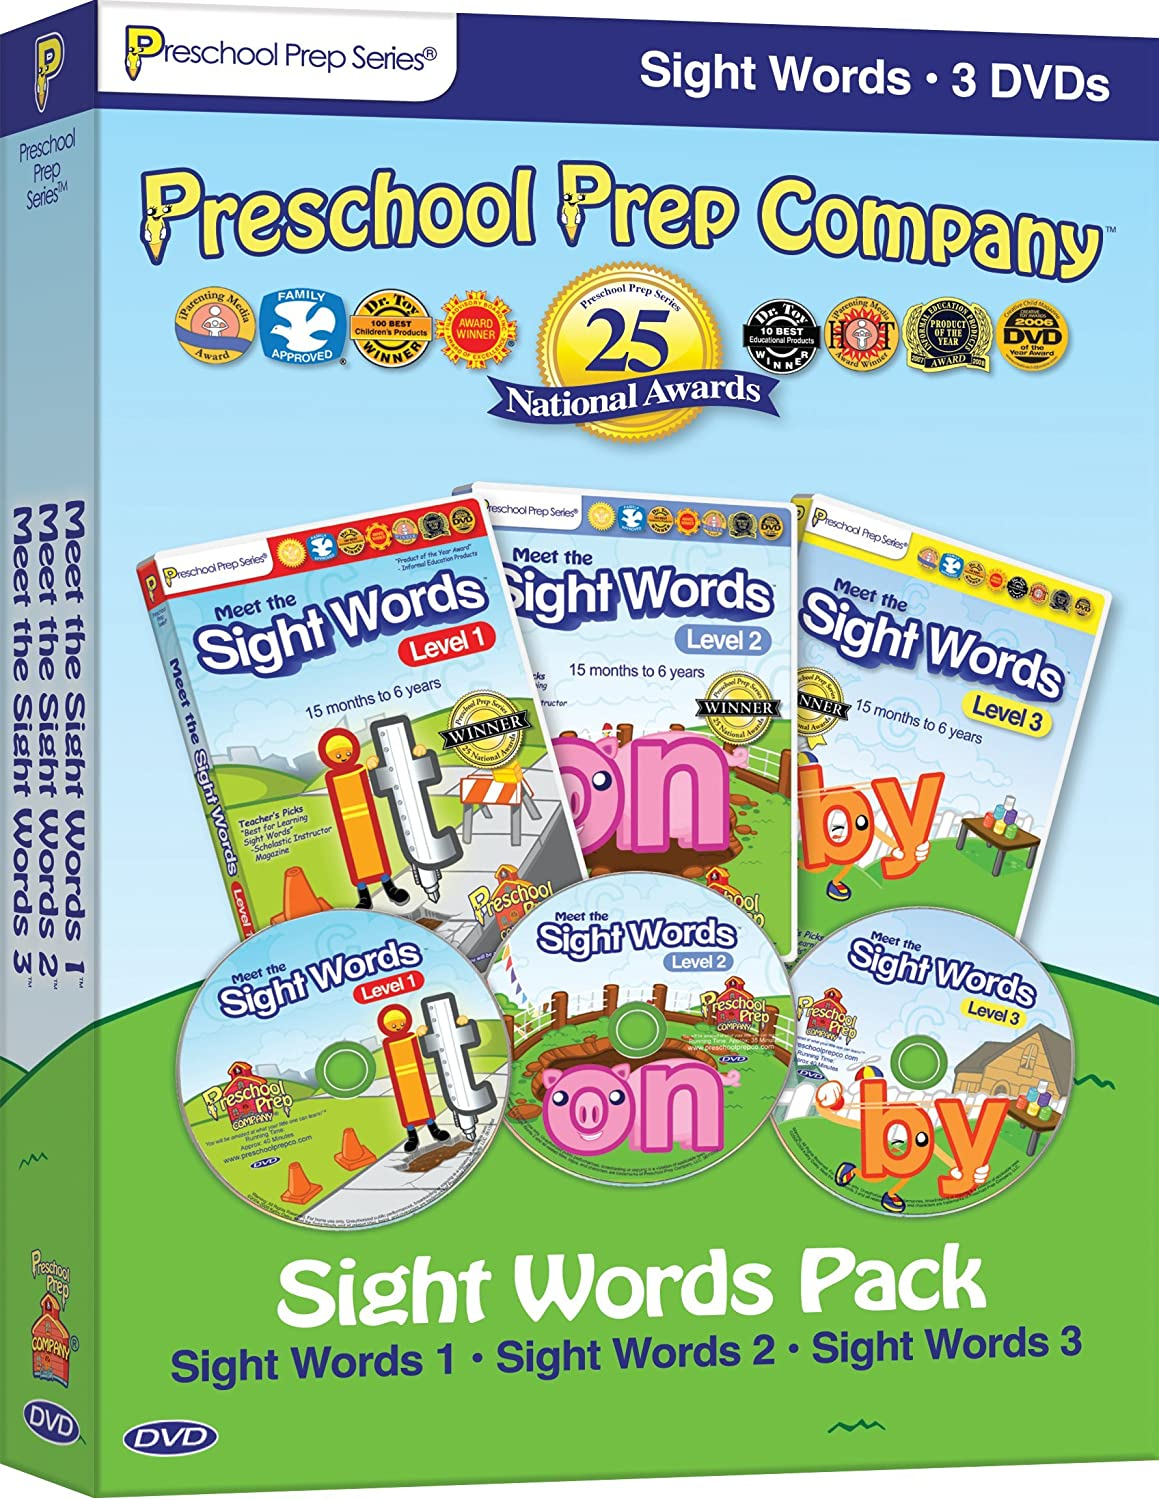 Amazon.com: Preschool Prep Series: Sight Words Pack (Meet the Sight ...